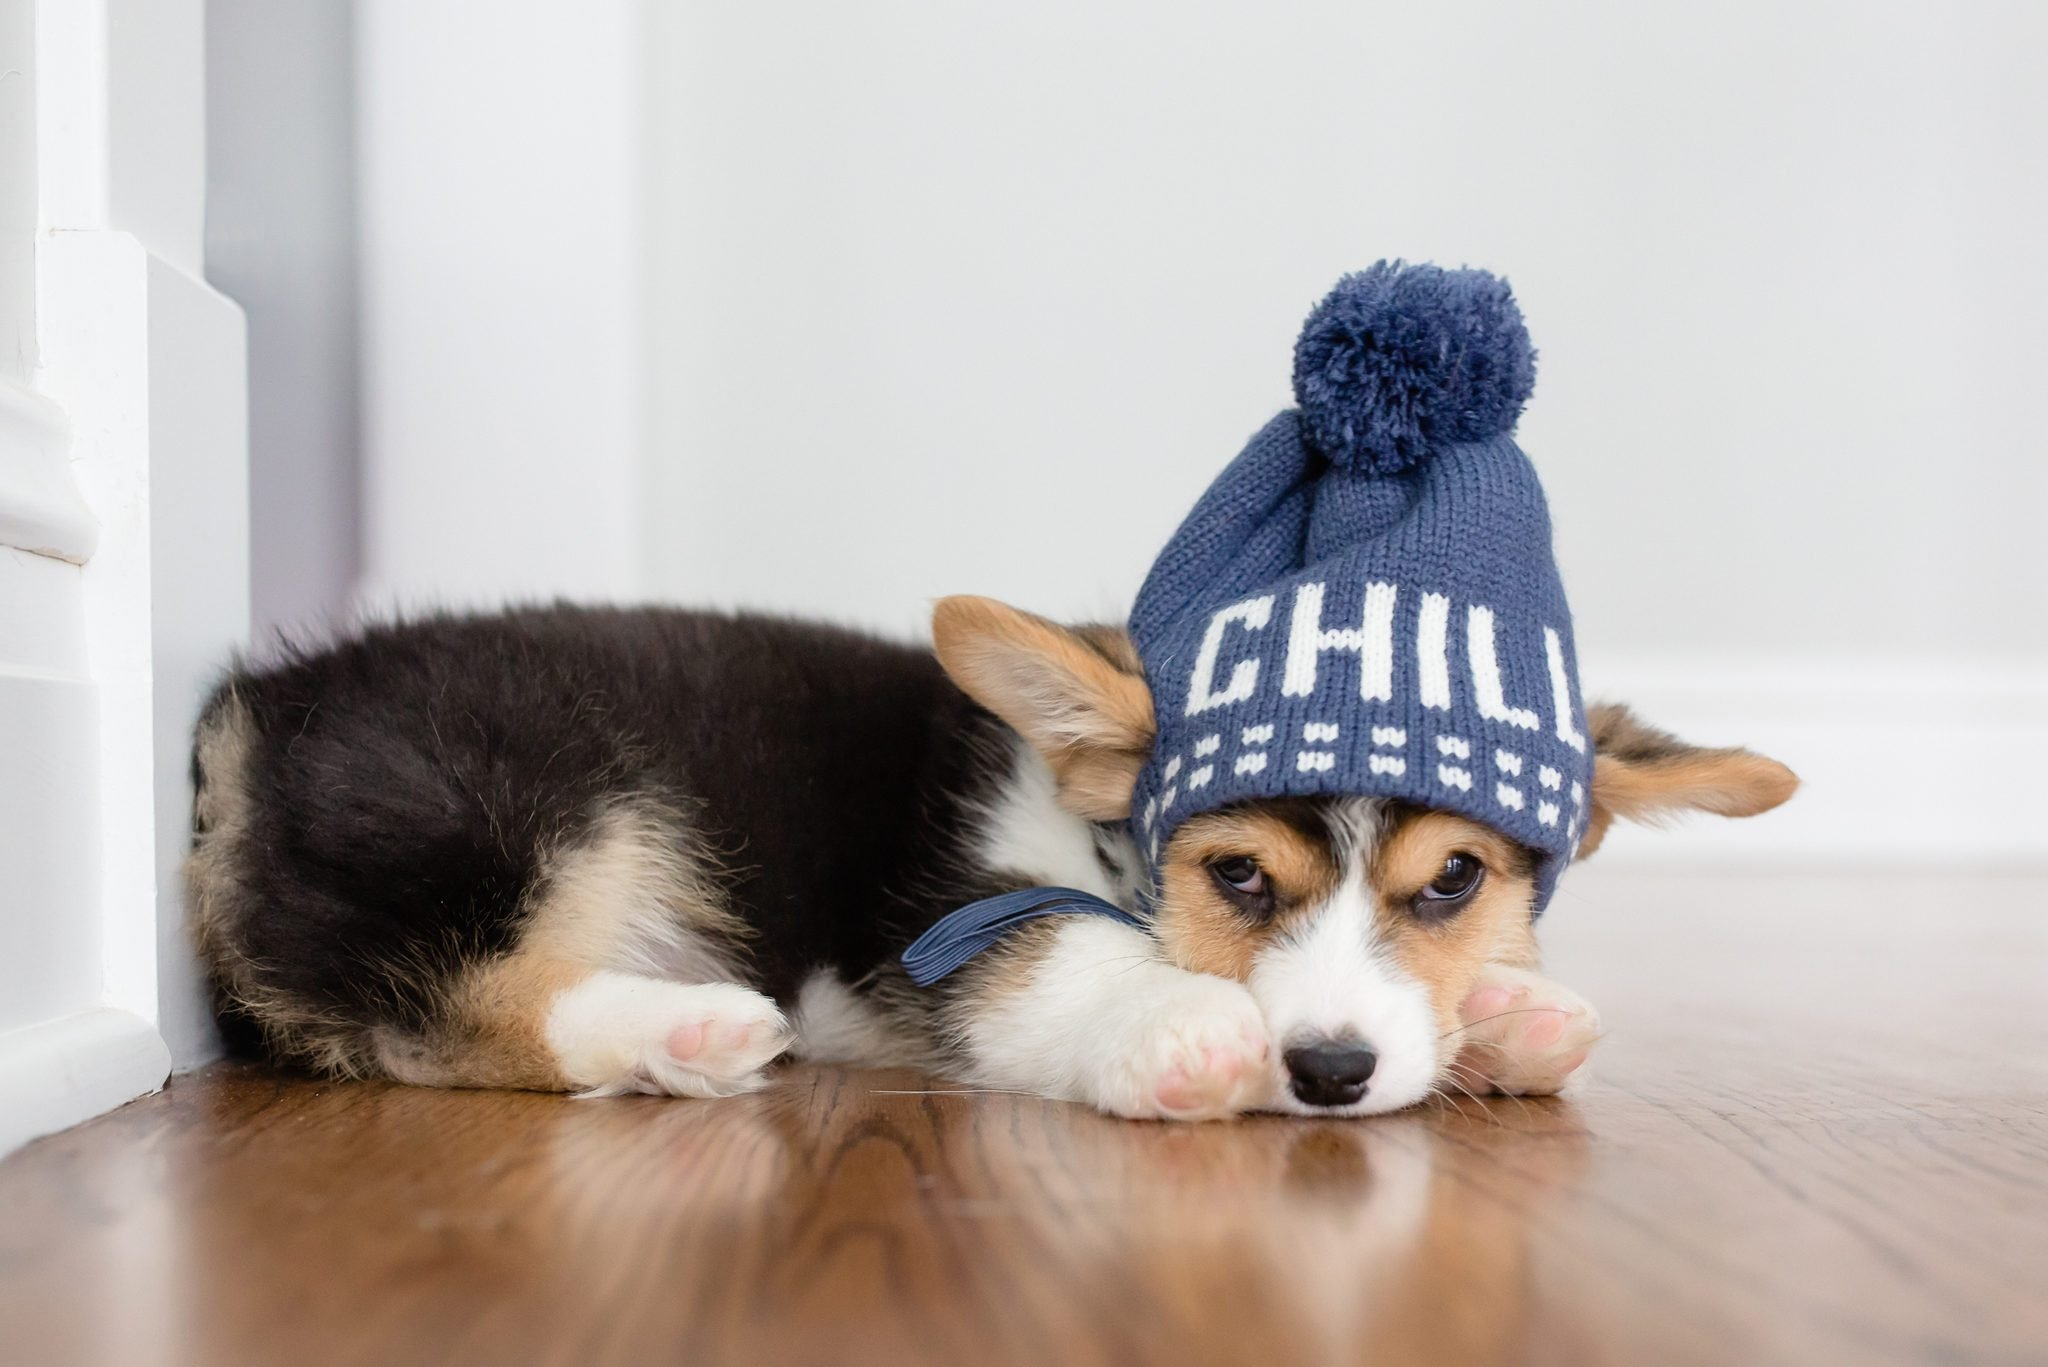 Corgi puppy laying down with hat cute winter hat on